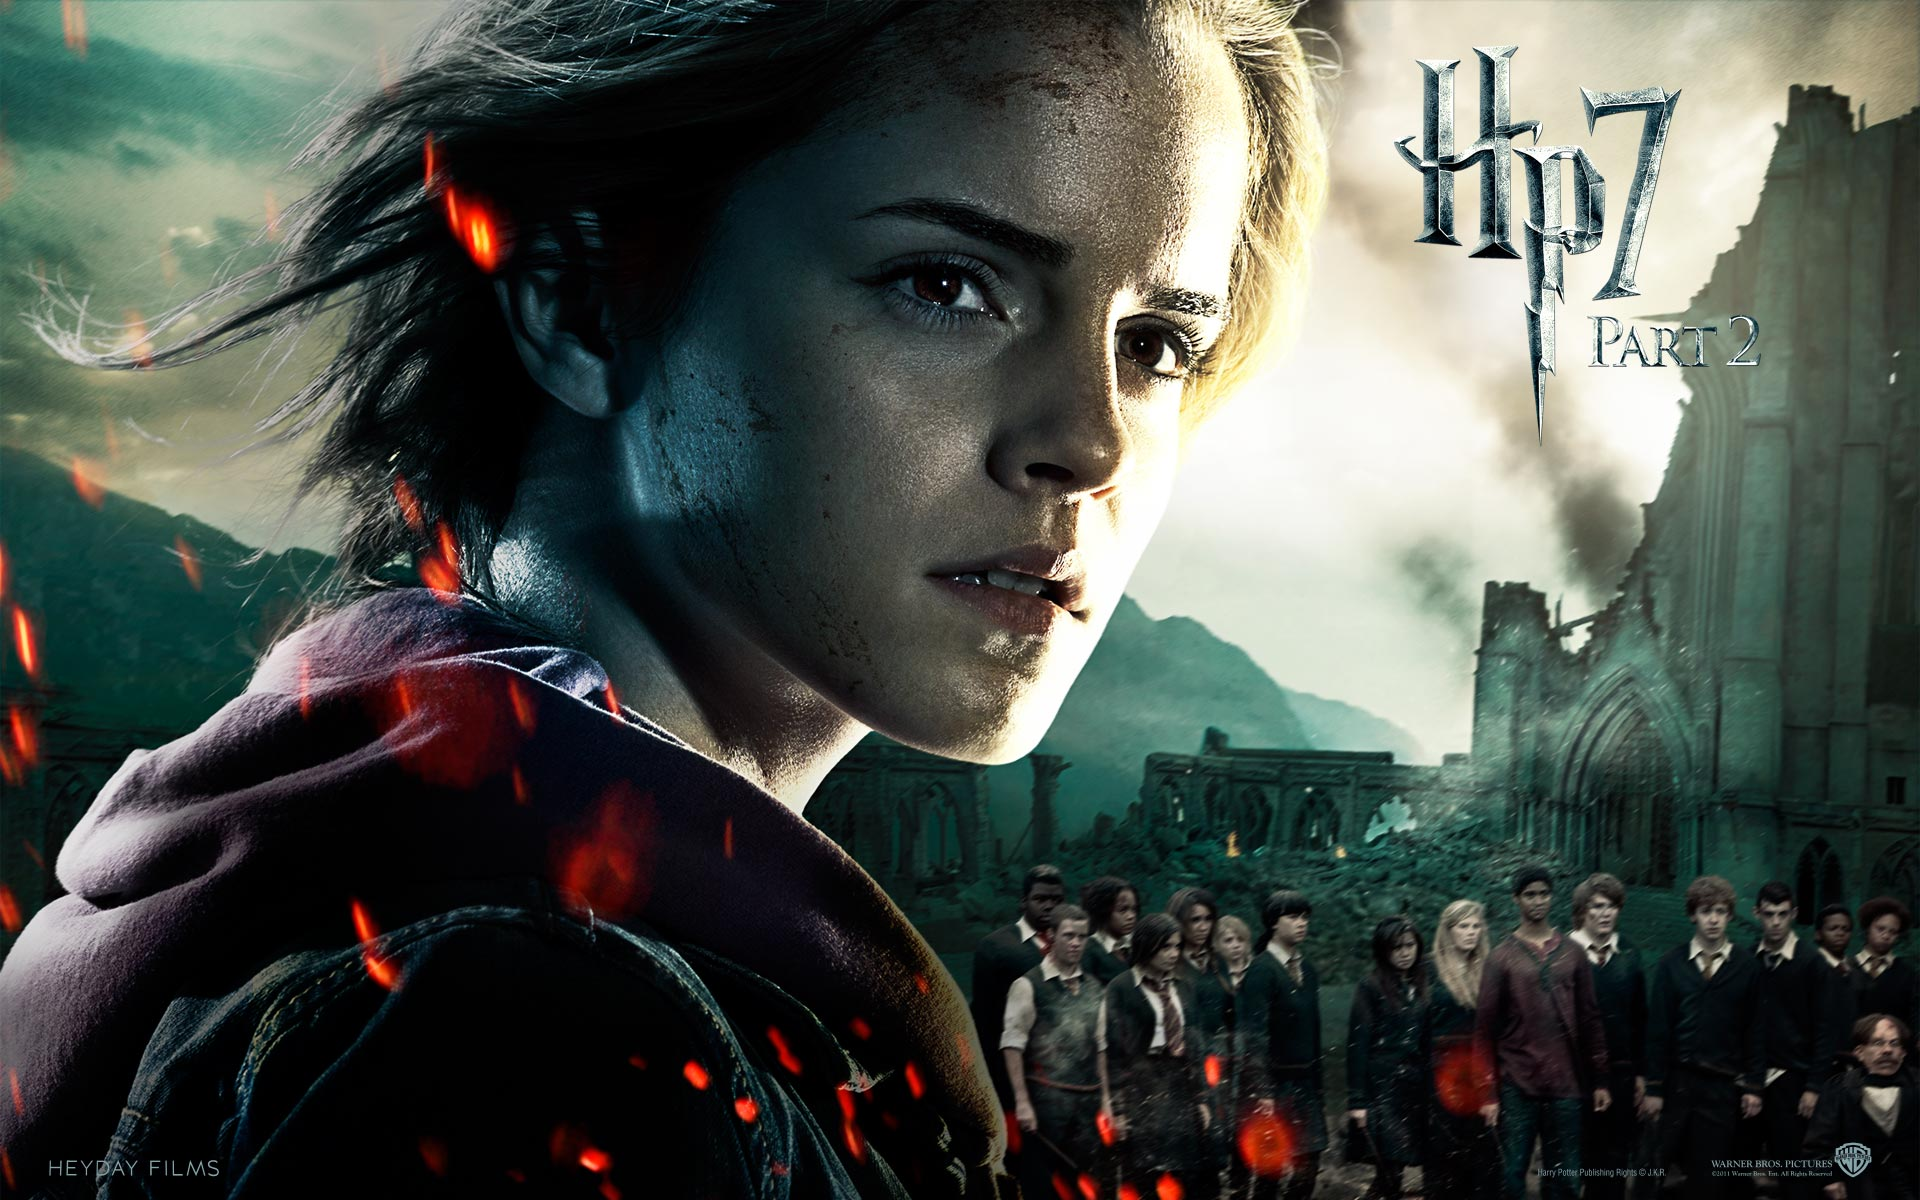 Emma Watson in HP7 Part 2 wallpaper